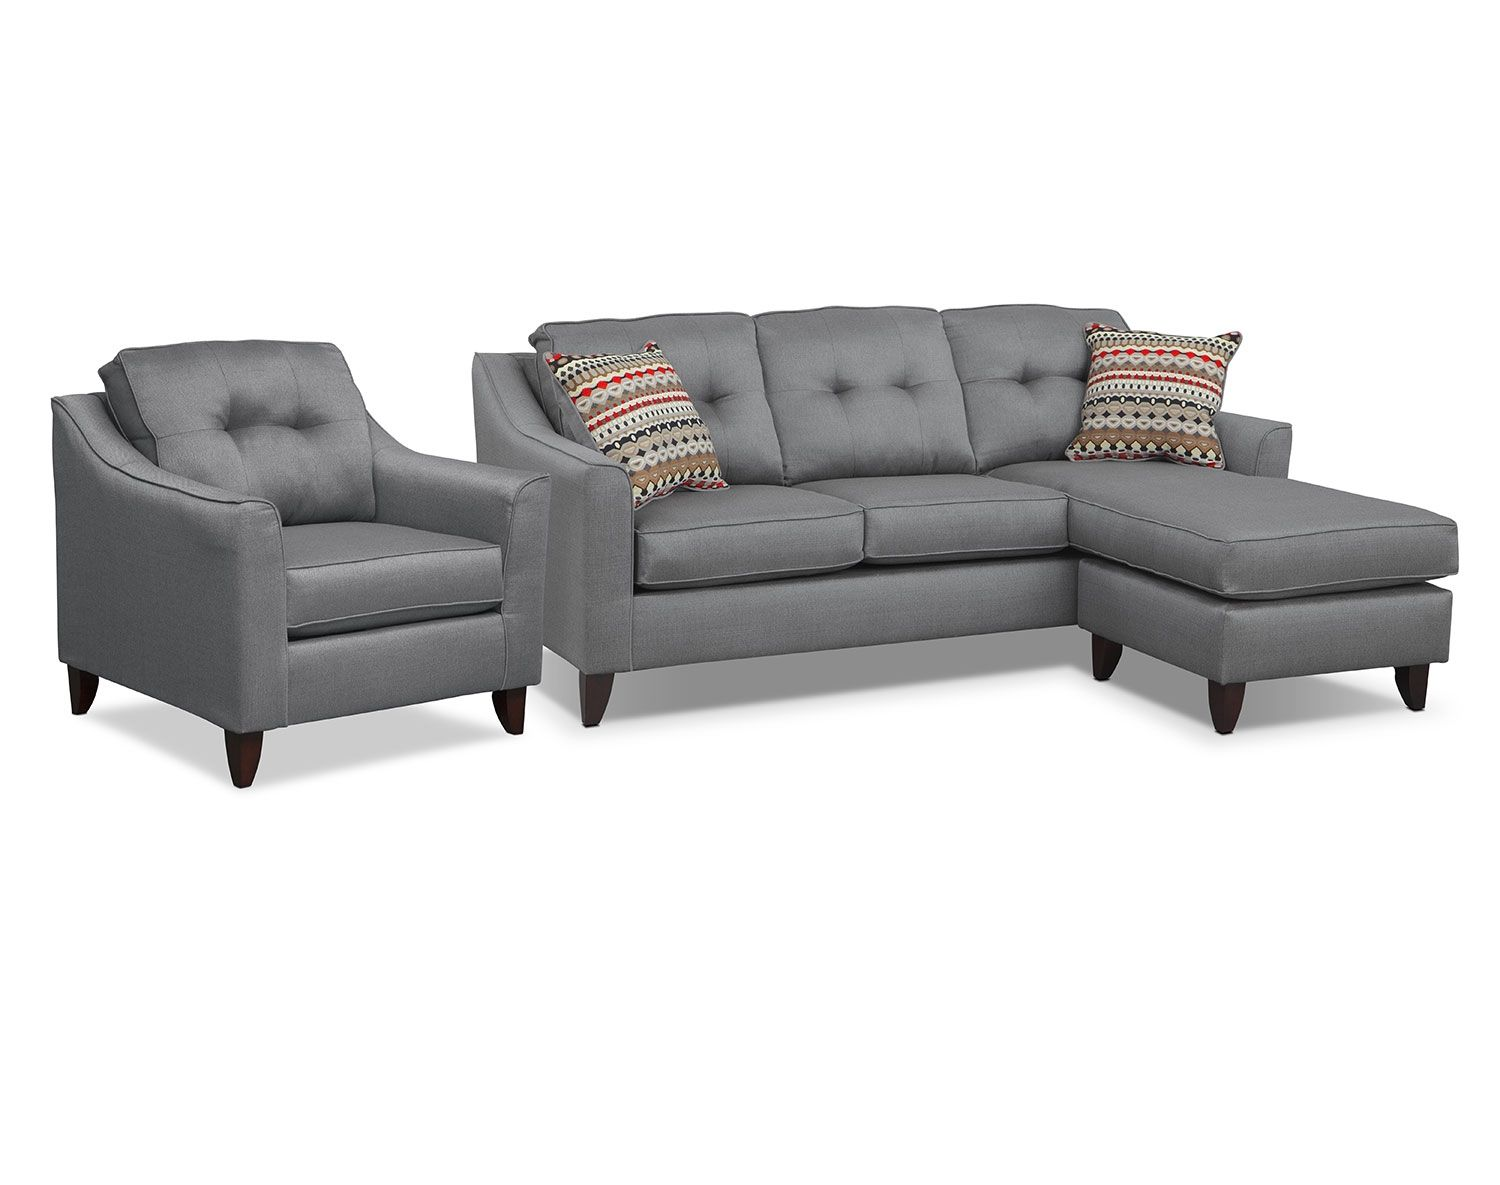 Marco Gray Sectional Living Room Collection | Value City Furniture ...